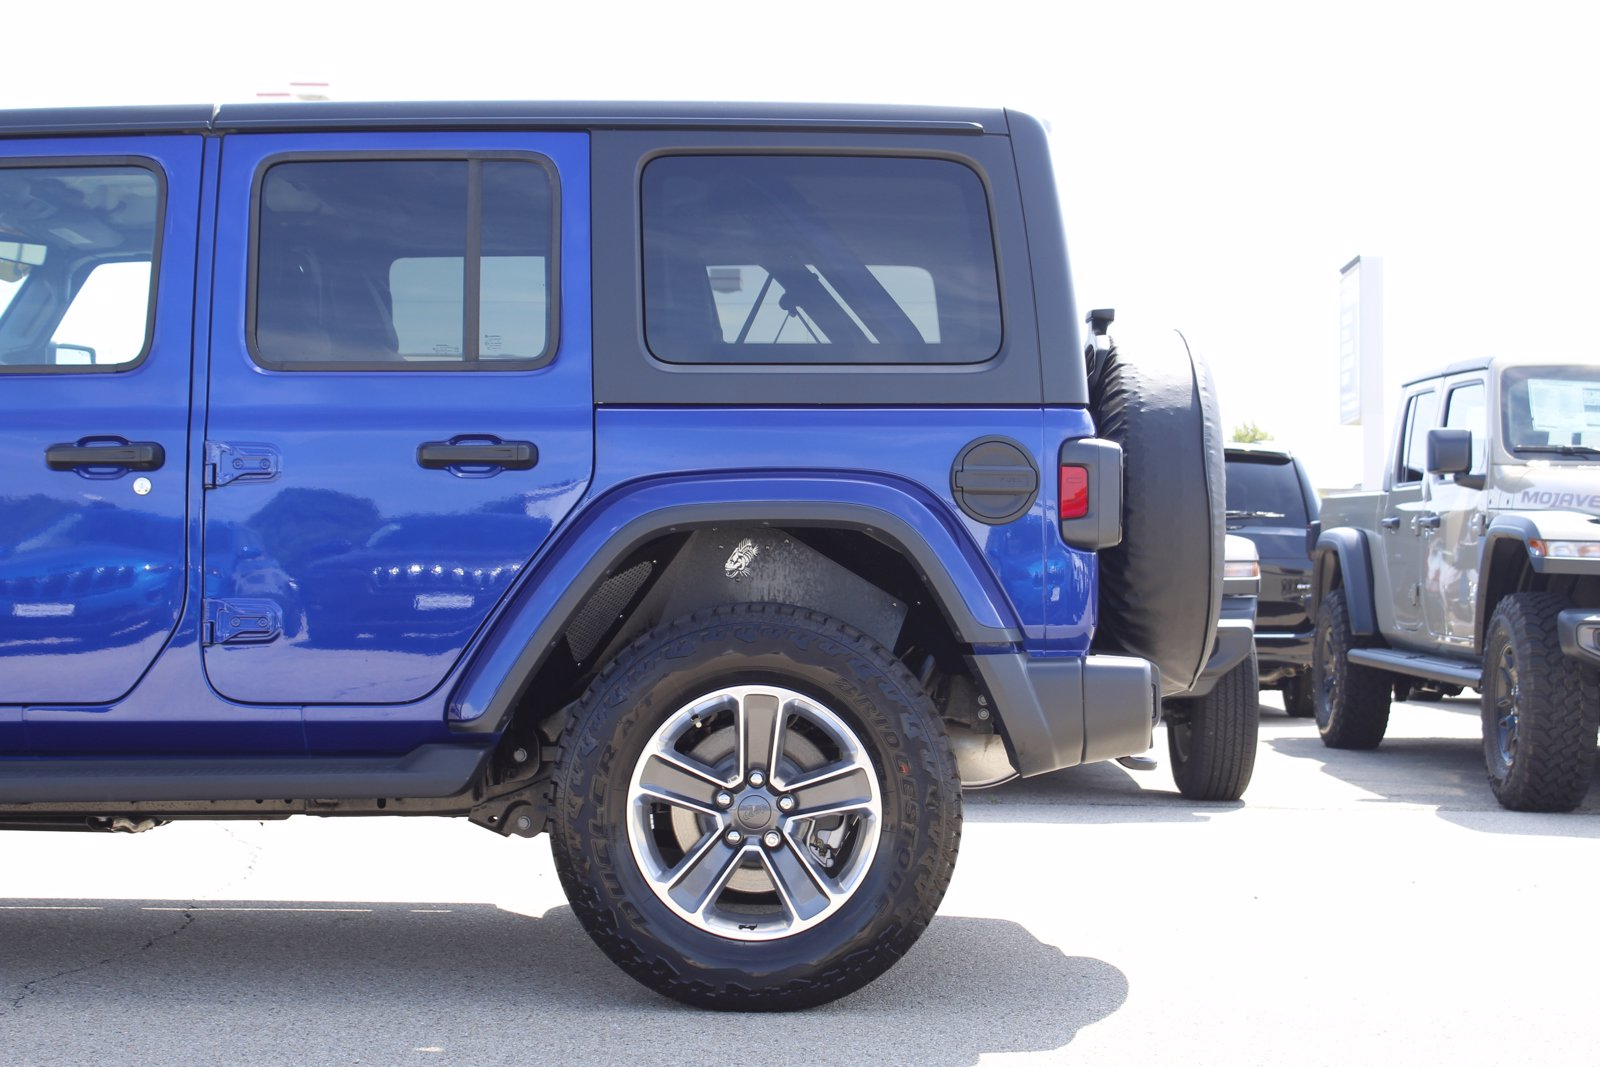 Certified Pre-Owned 2020 Jeep Wrangler Unlimited Sahara